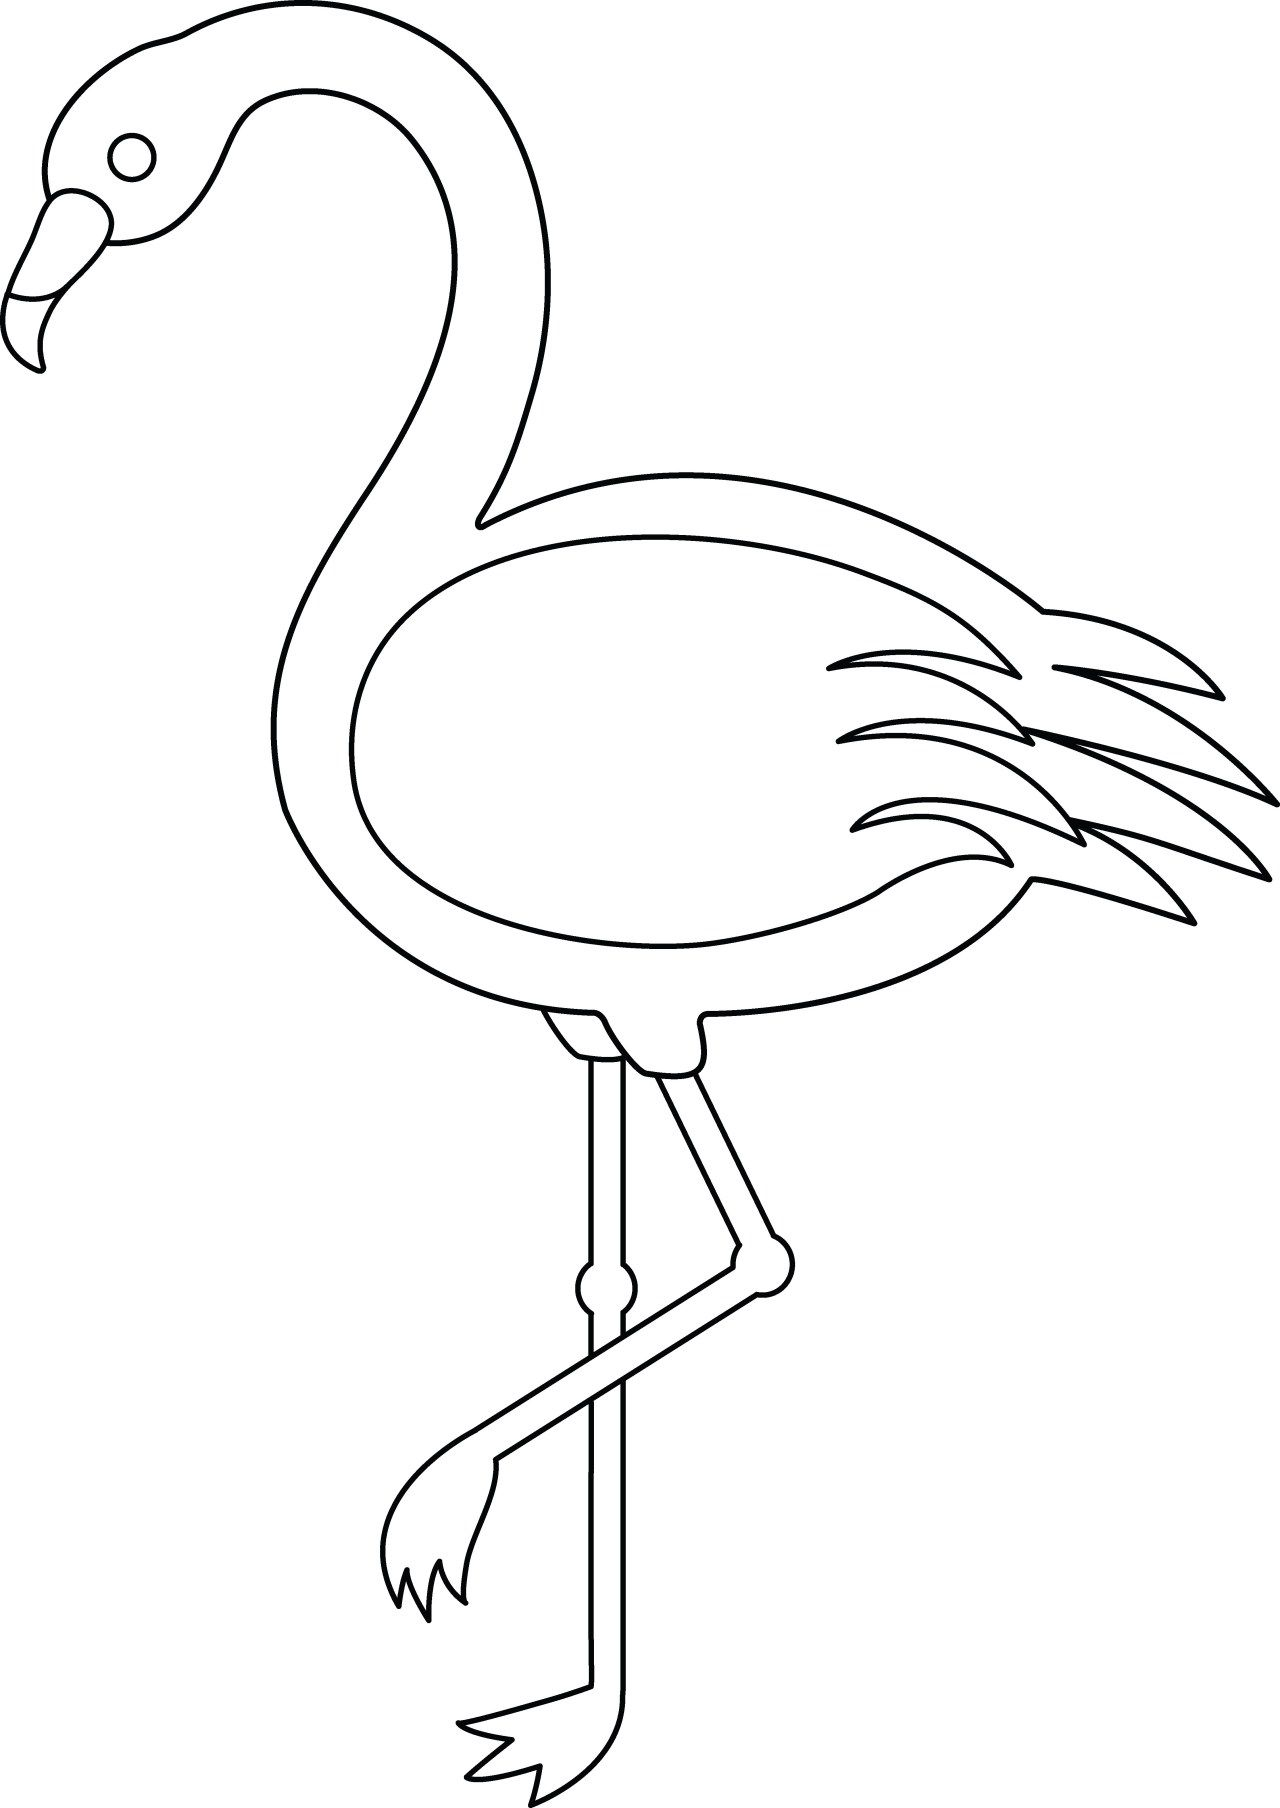 25 Inspired Picture Of Flamingo Coloring Pages Entitlementtrap Com Flamingo Coloring Page Flamingo Craft Flamingo Color